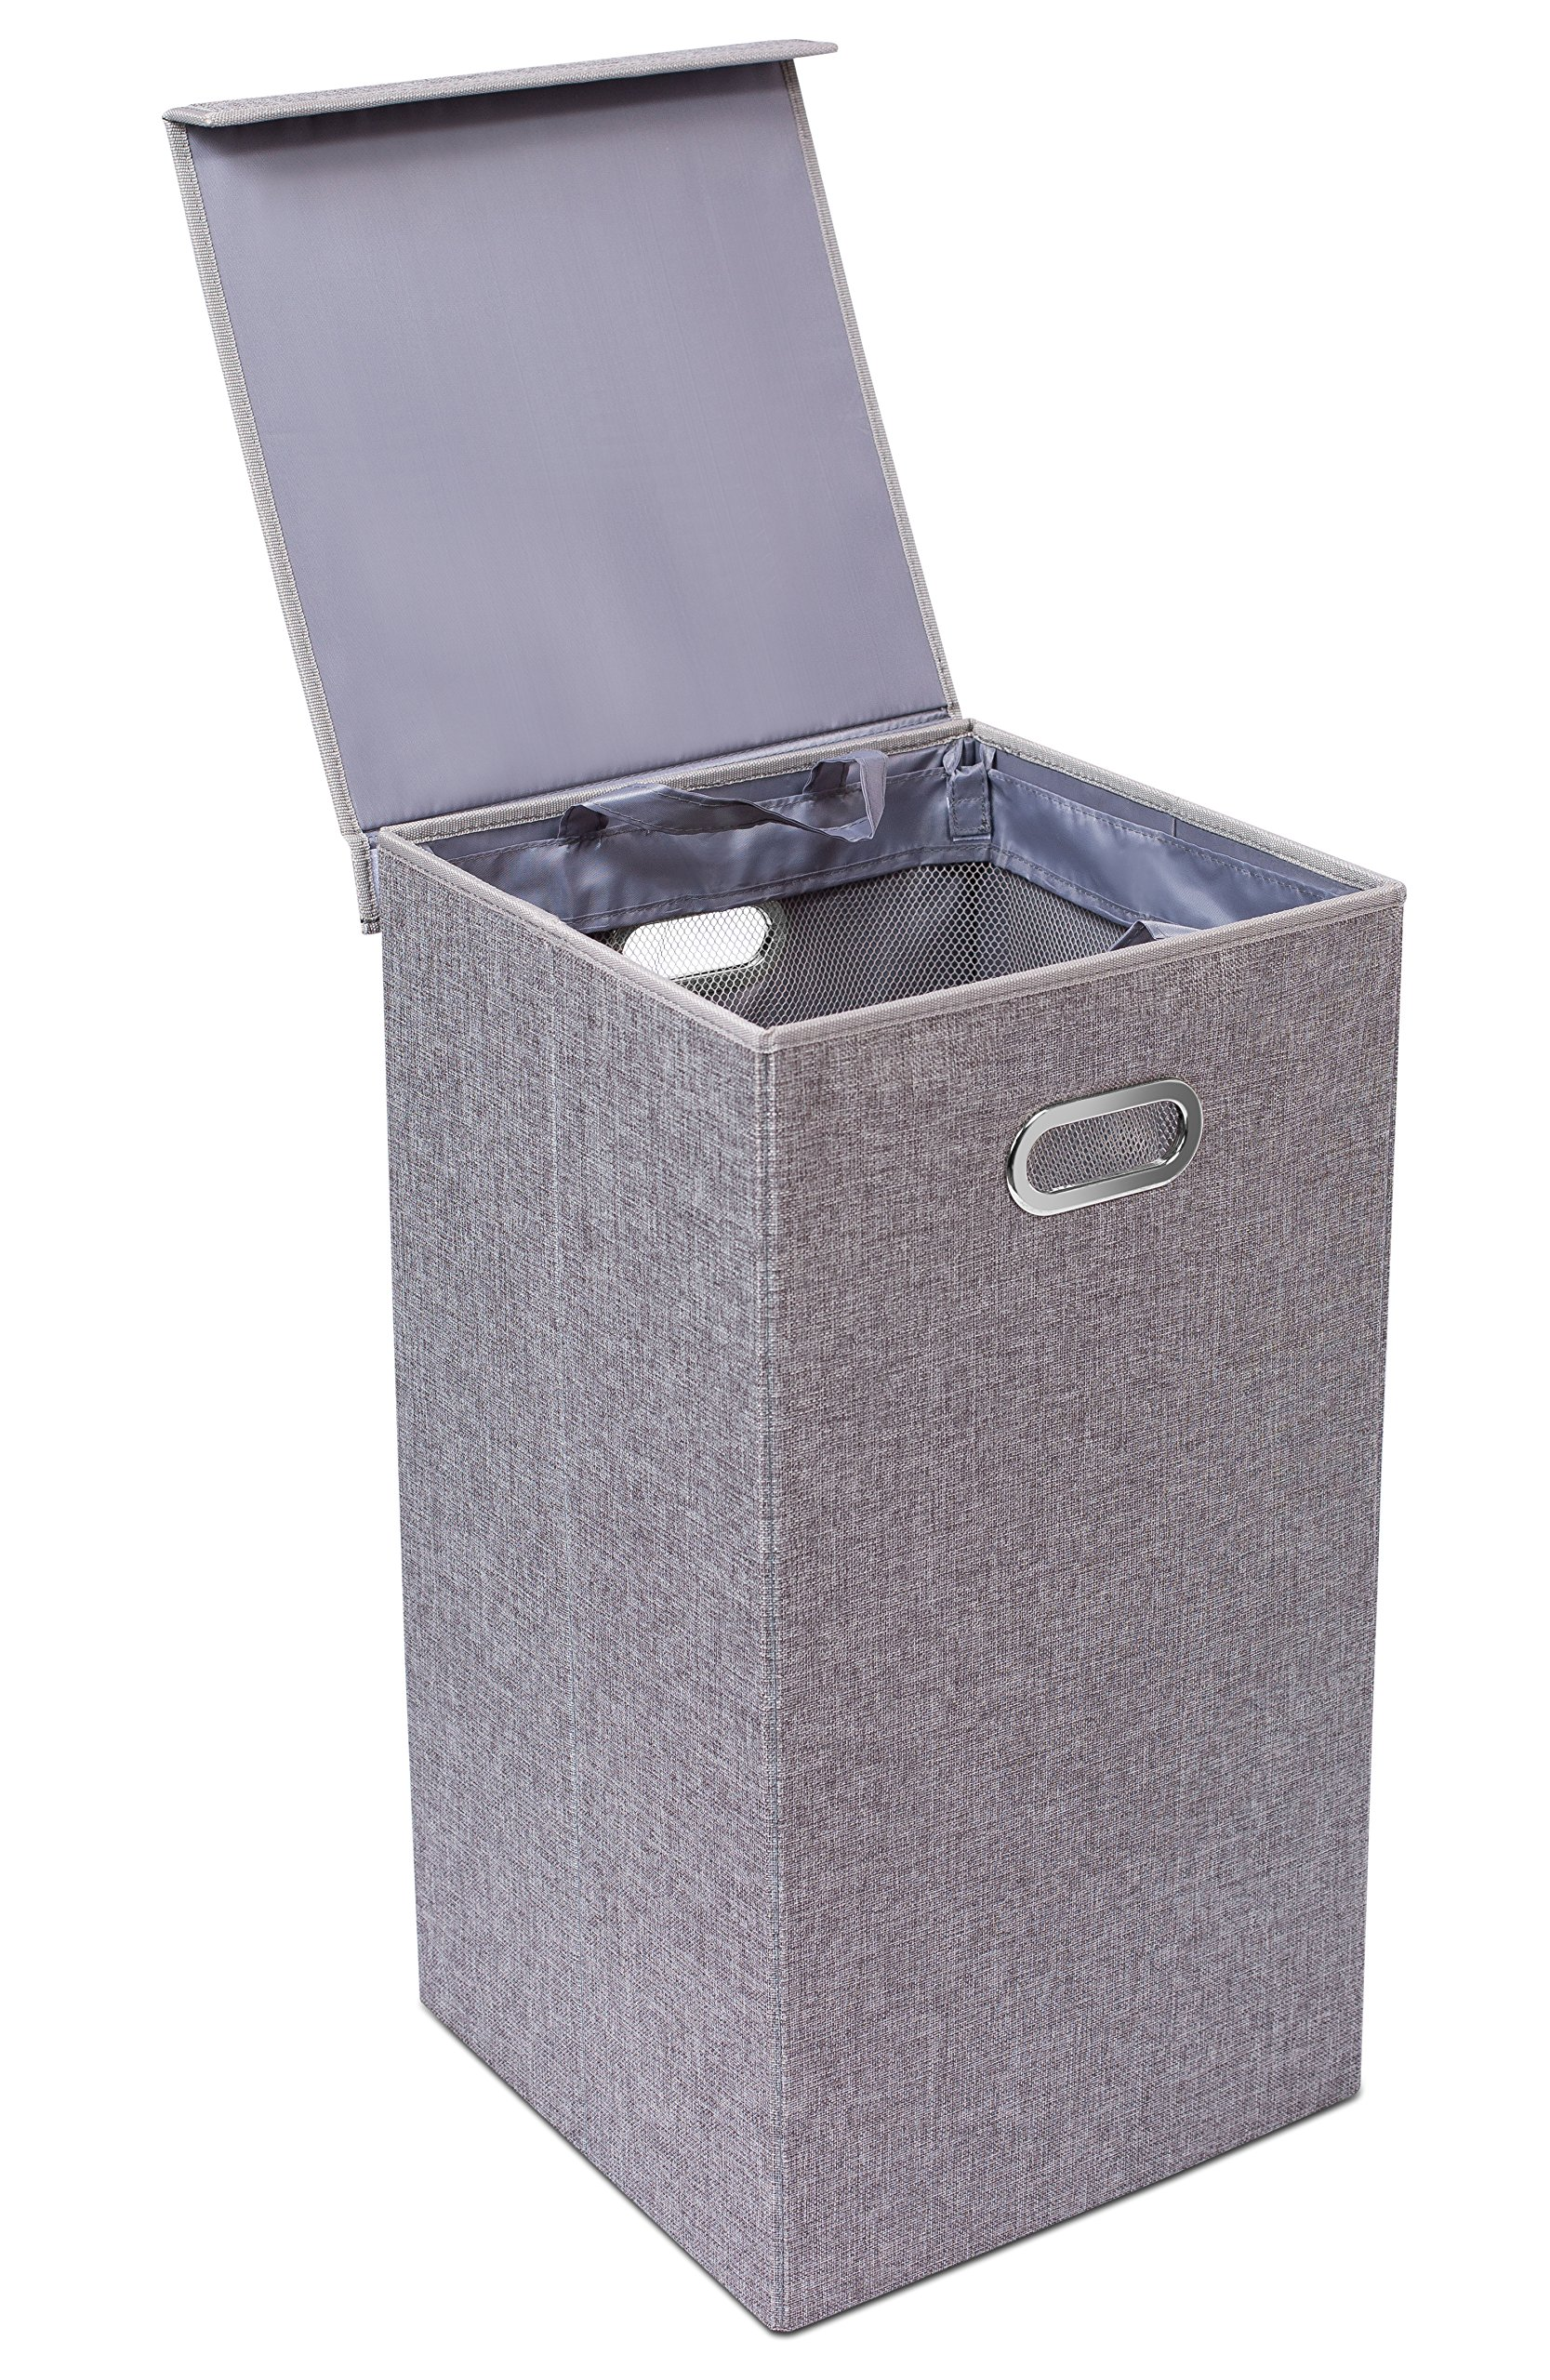 BirdRock Home Single Laundry Hamper with Lid and Removable Liner | Linen | Easily Transport Laundry | Foldable Hamper | Cut Out Handles by BirdRock Home